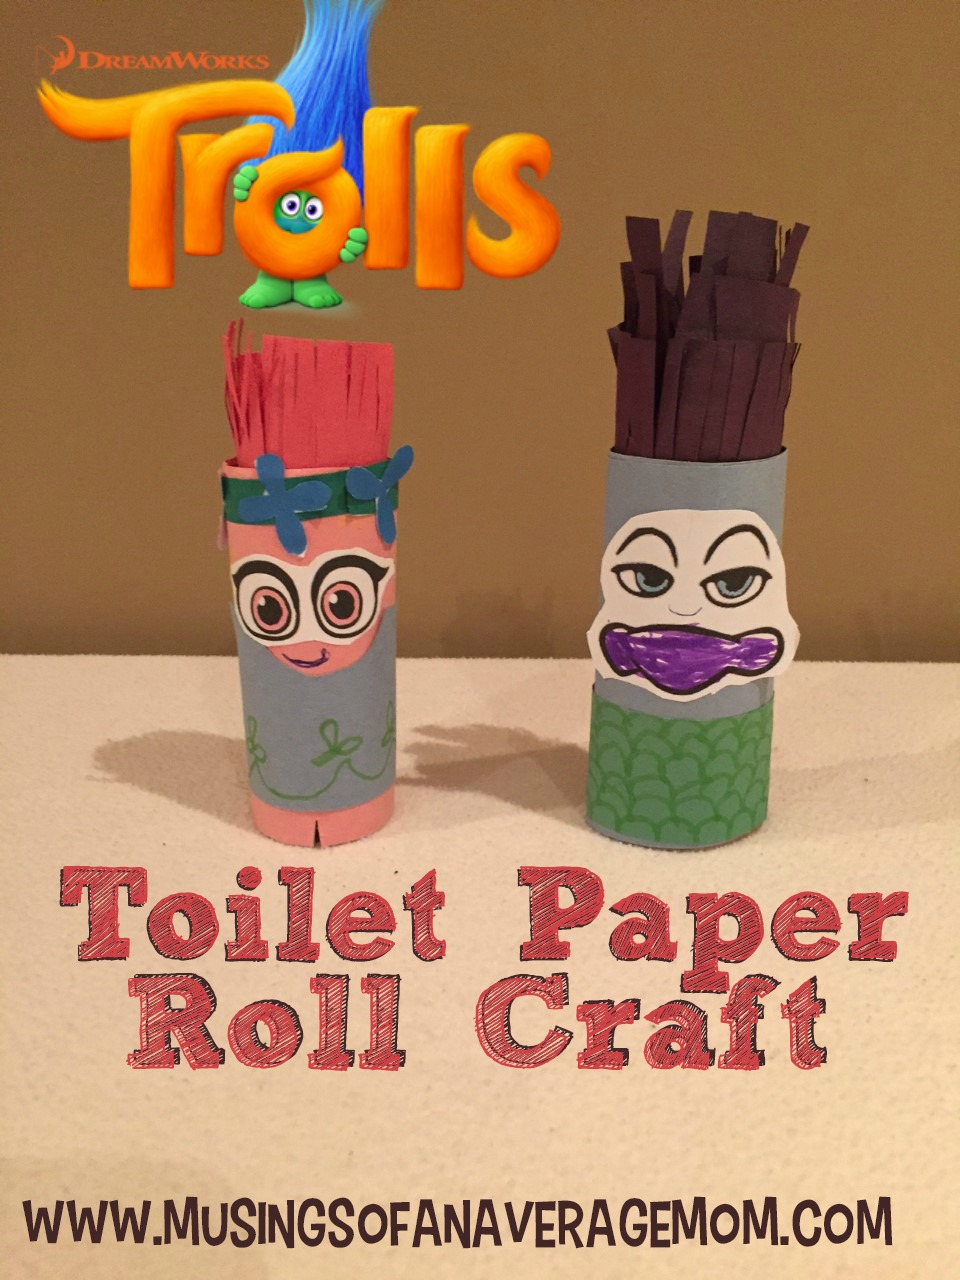 Musings of an average mom free trolls crafts for Design your own toilet paper